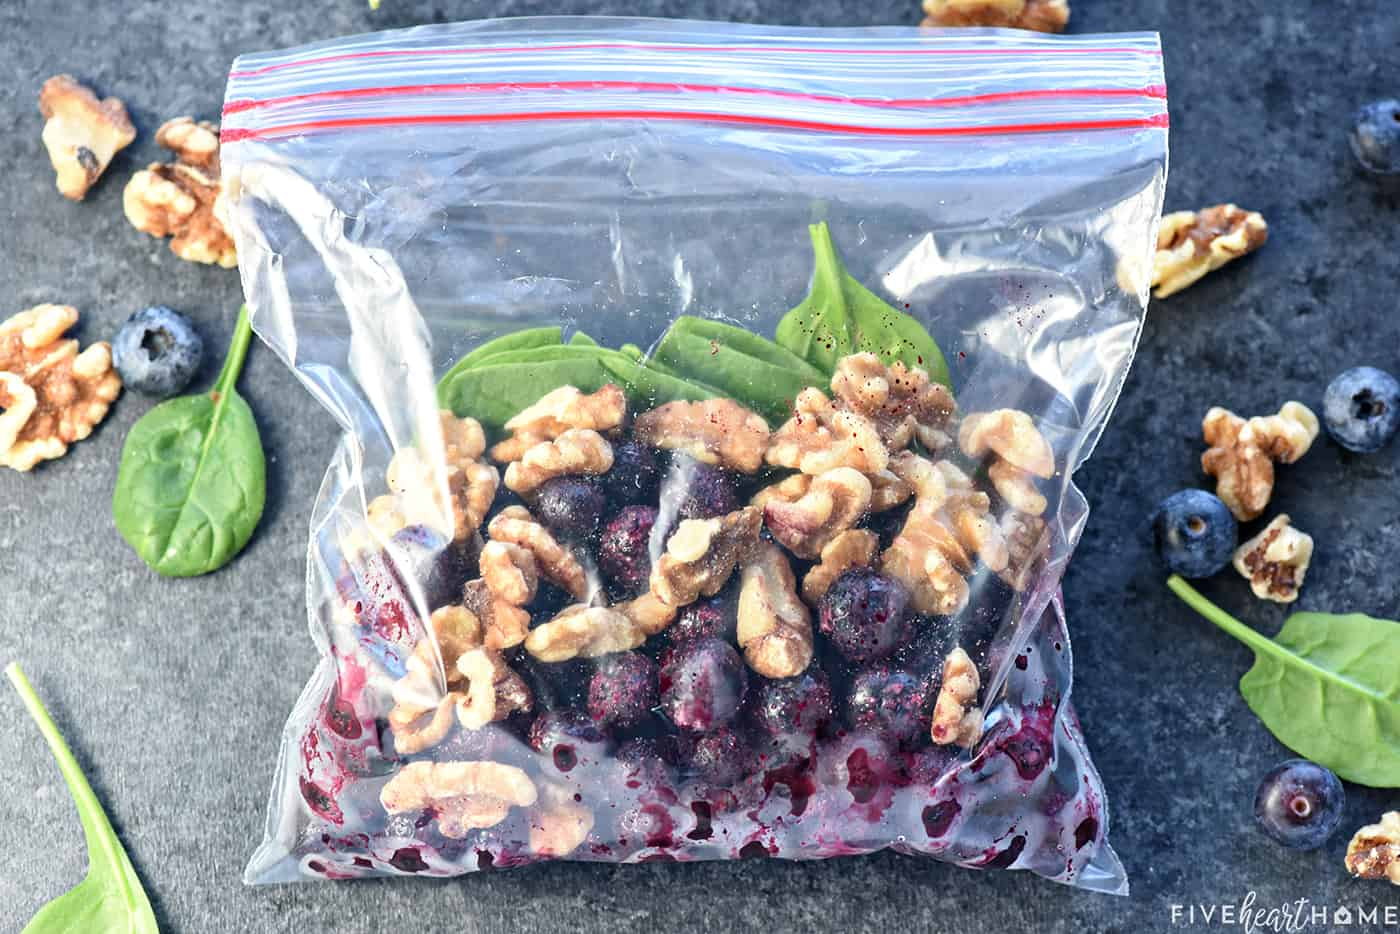 Freezer Smoothie Pack of blueberries, spinach, and walnuts